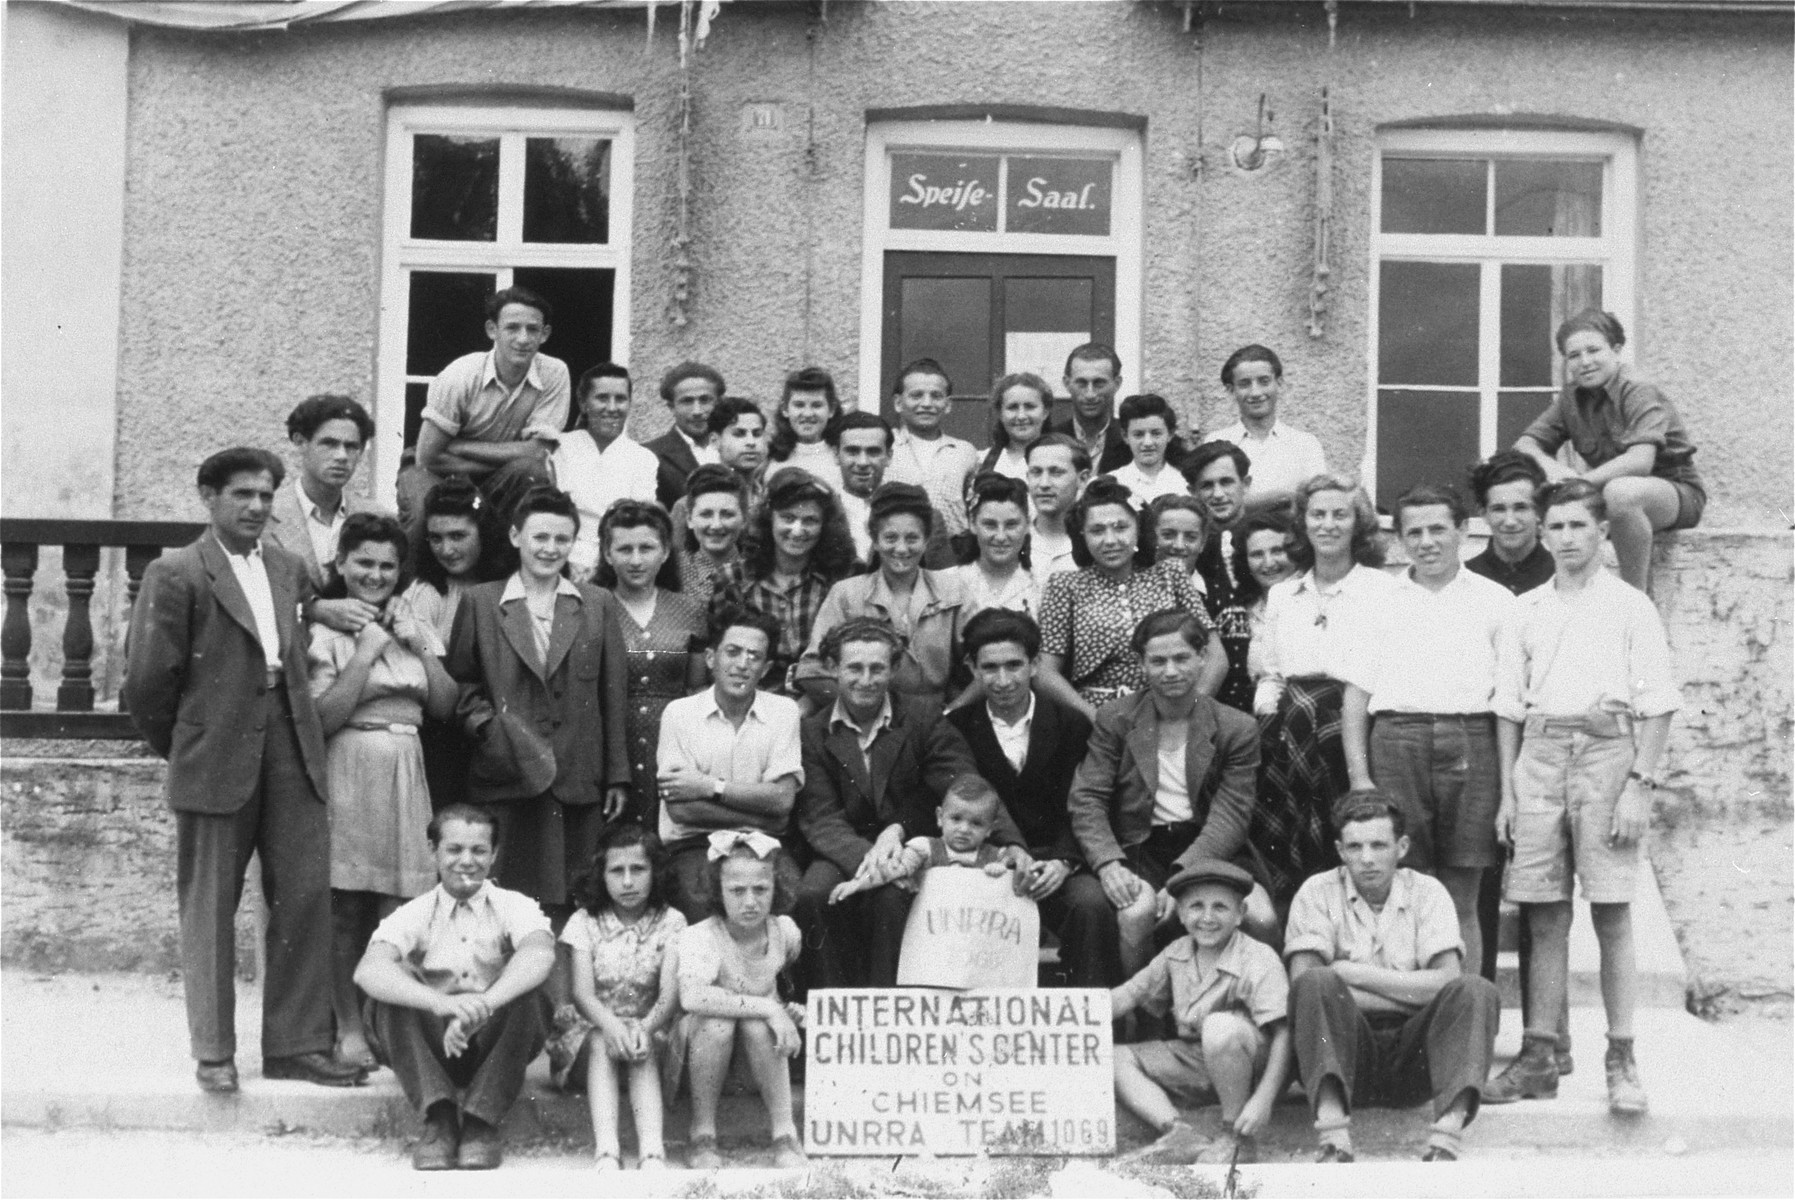 Group portrait of DP youth at the International Children's Center at Prien am Chiemsee.  Among those pictured is Genia Edlerman (back row, fourth from the left), Judith Gruber (standing in the front row, third from the left, wearing a dark suit jacket) Samuel Gruber (back row , sixth from the left, with dark hair), and their son Jack Gruber (front, directly behind the small UNRRA sign).